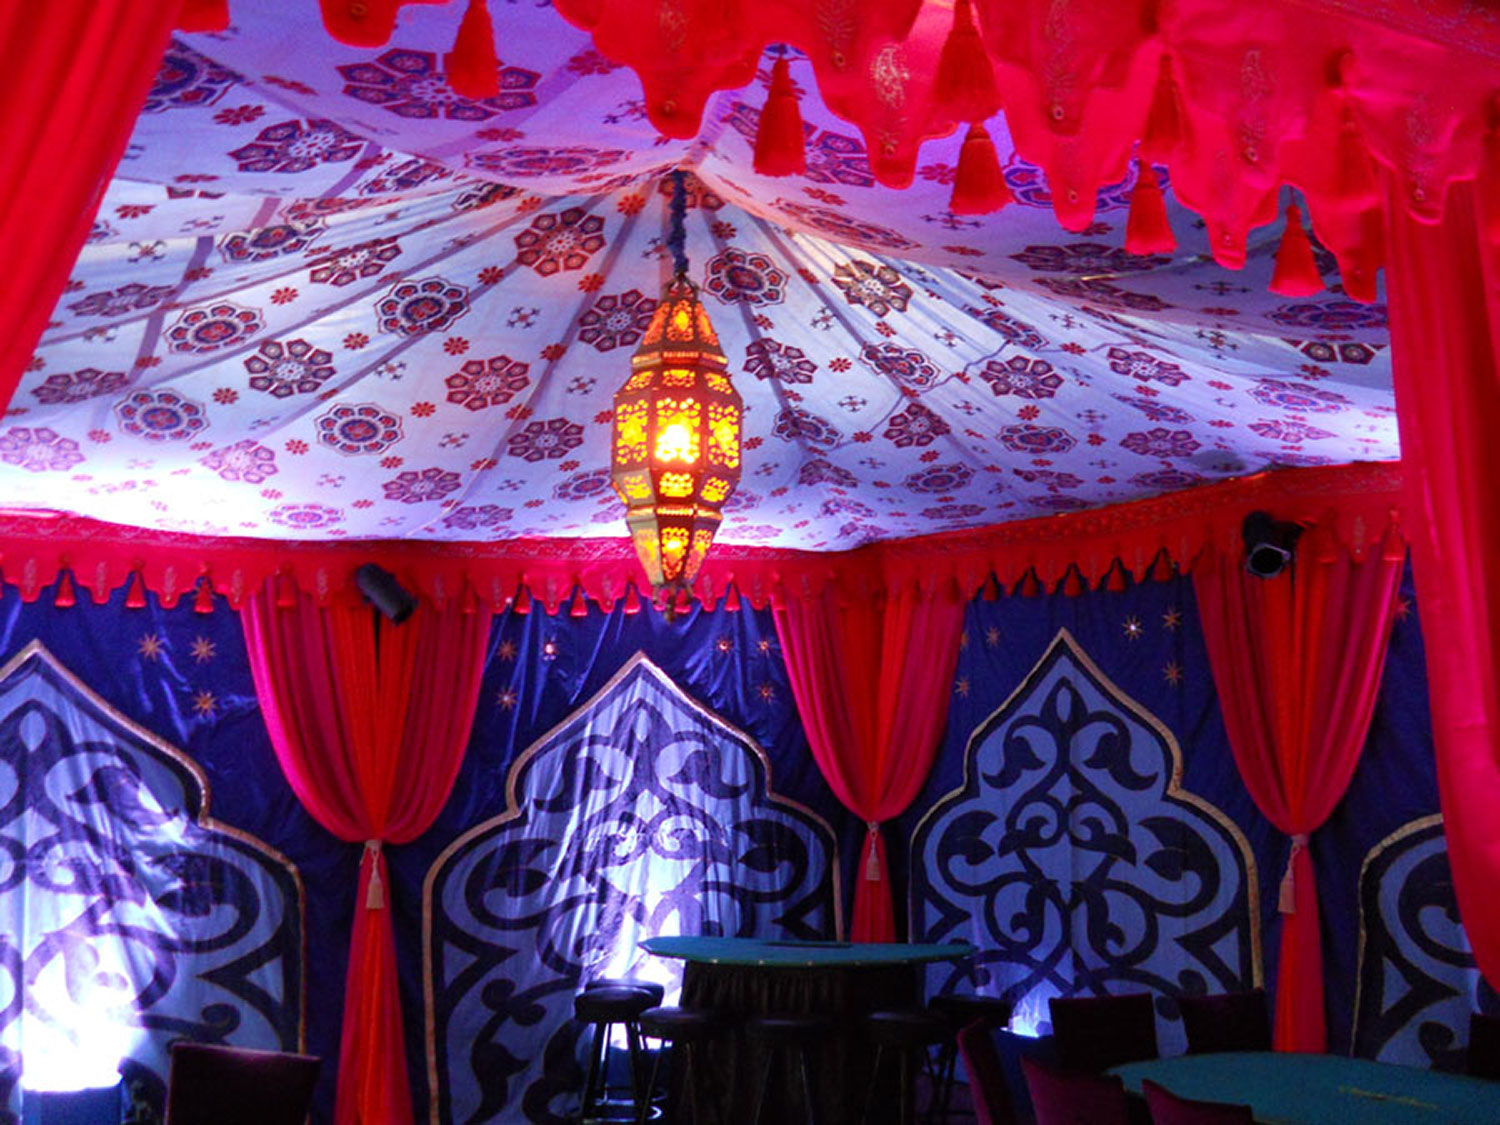 raj-tents-moroccan-theme-mughal-arches-moorish-tiles.jpg